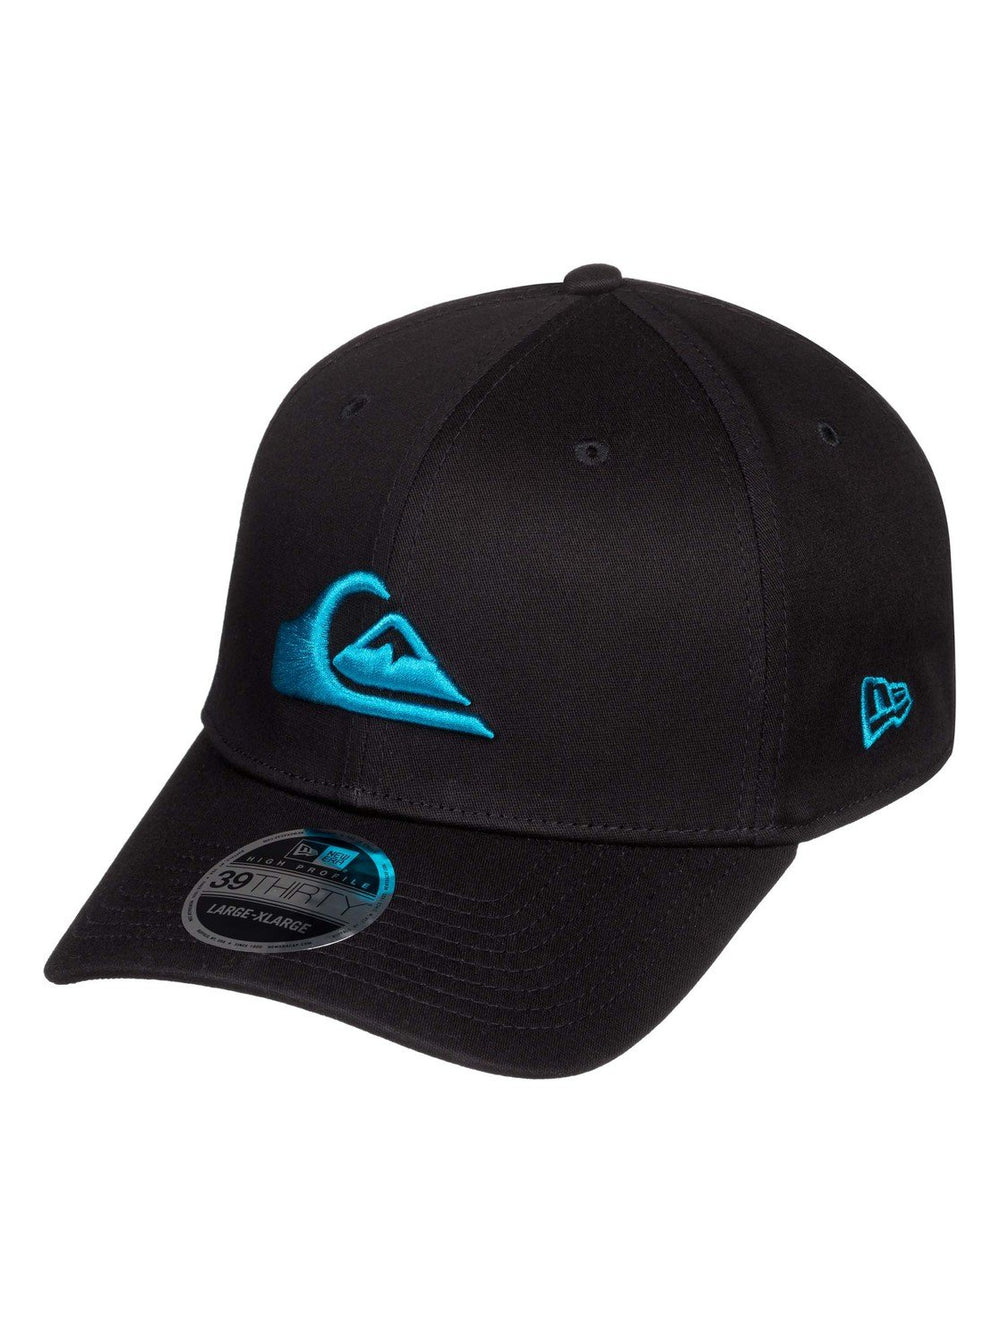 MOUNTAIN & WAVE NEW ERA STRECH FIT HAT